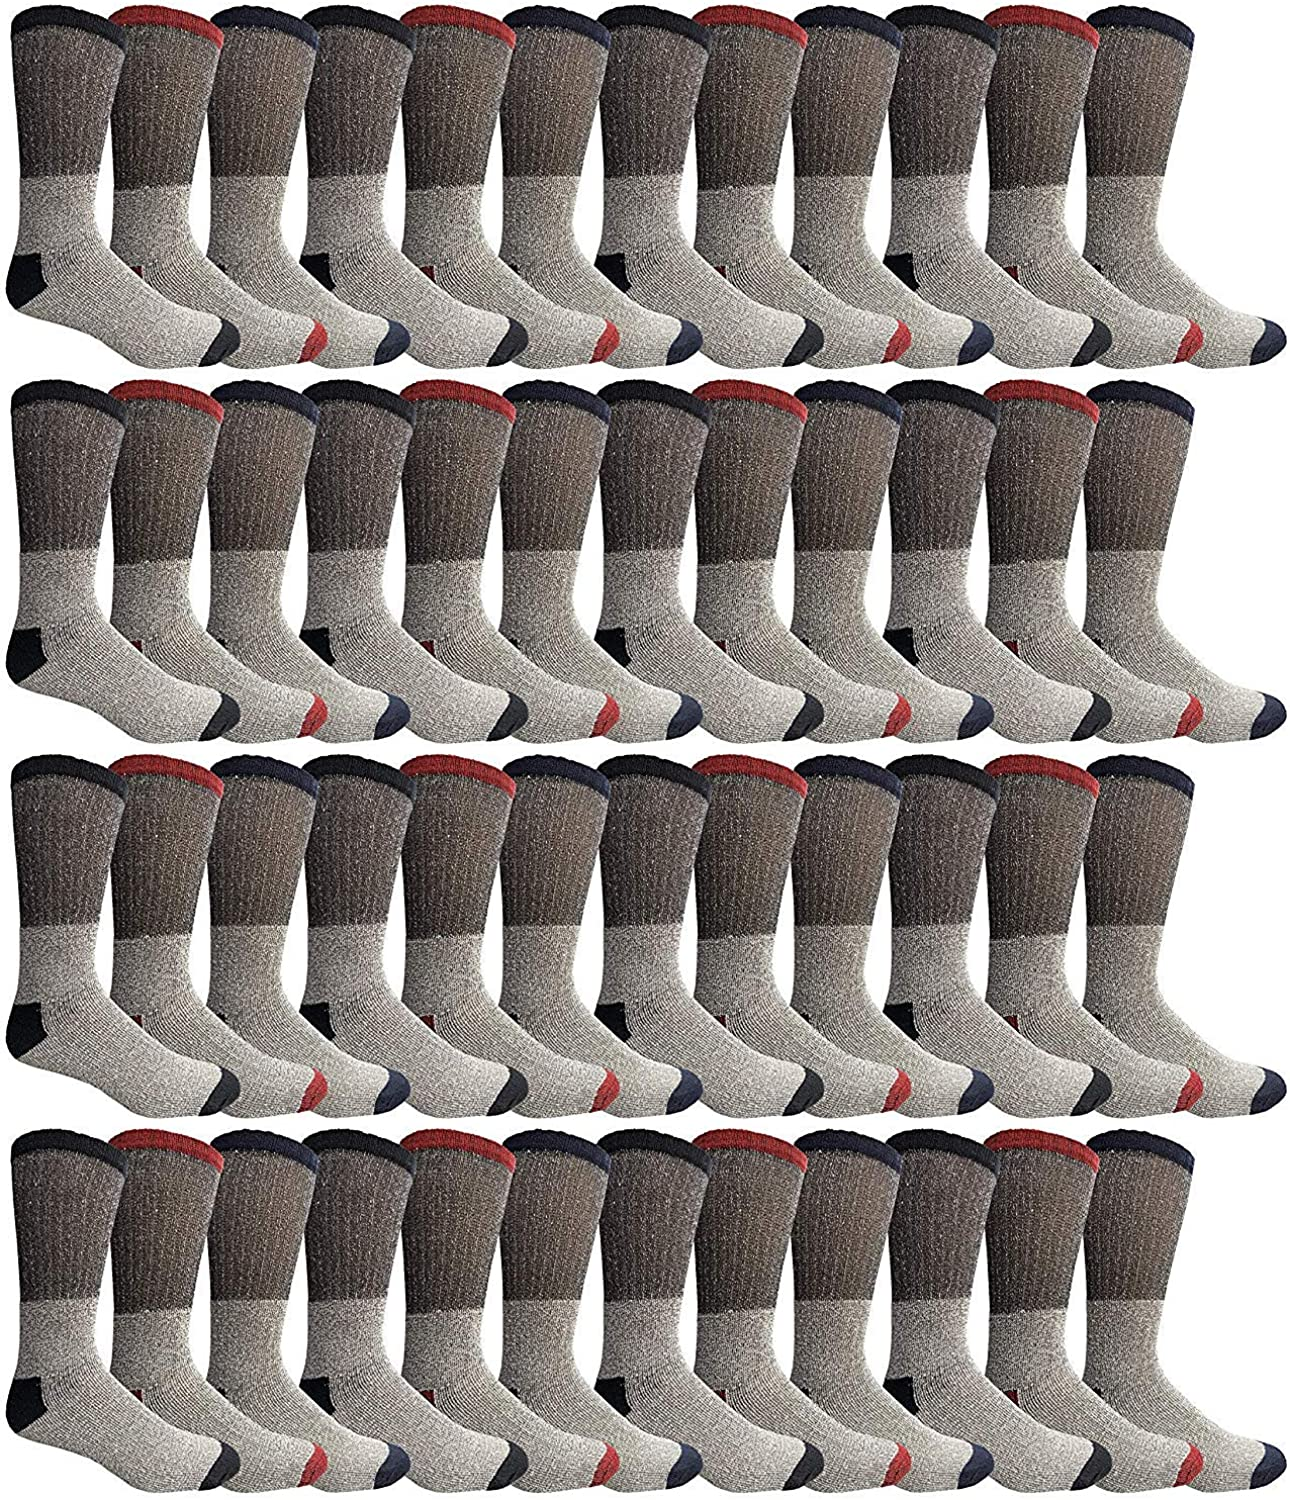 Inexpensive 48 Yacht Beauty products Smith Mens Womens Cotton Cold W Thermal Socks Crew